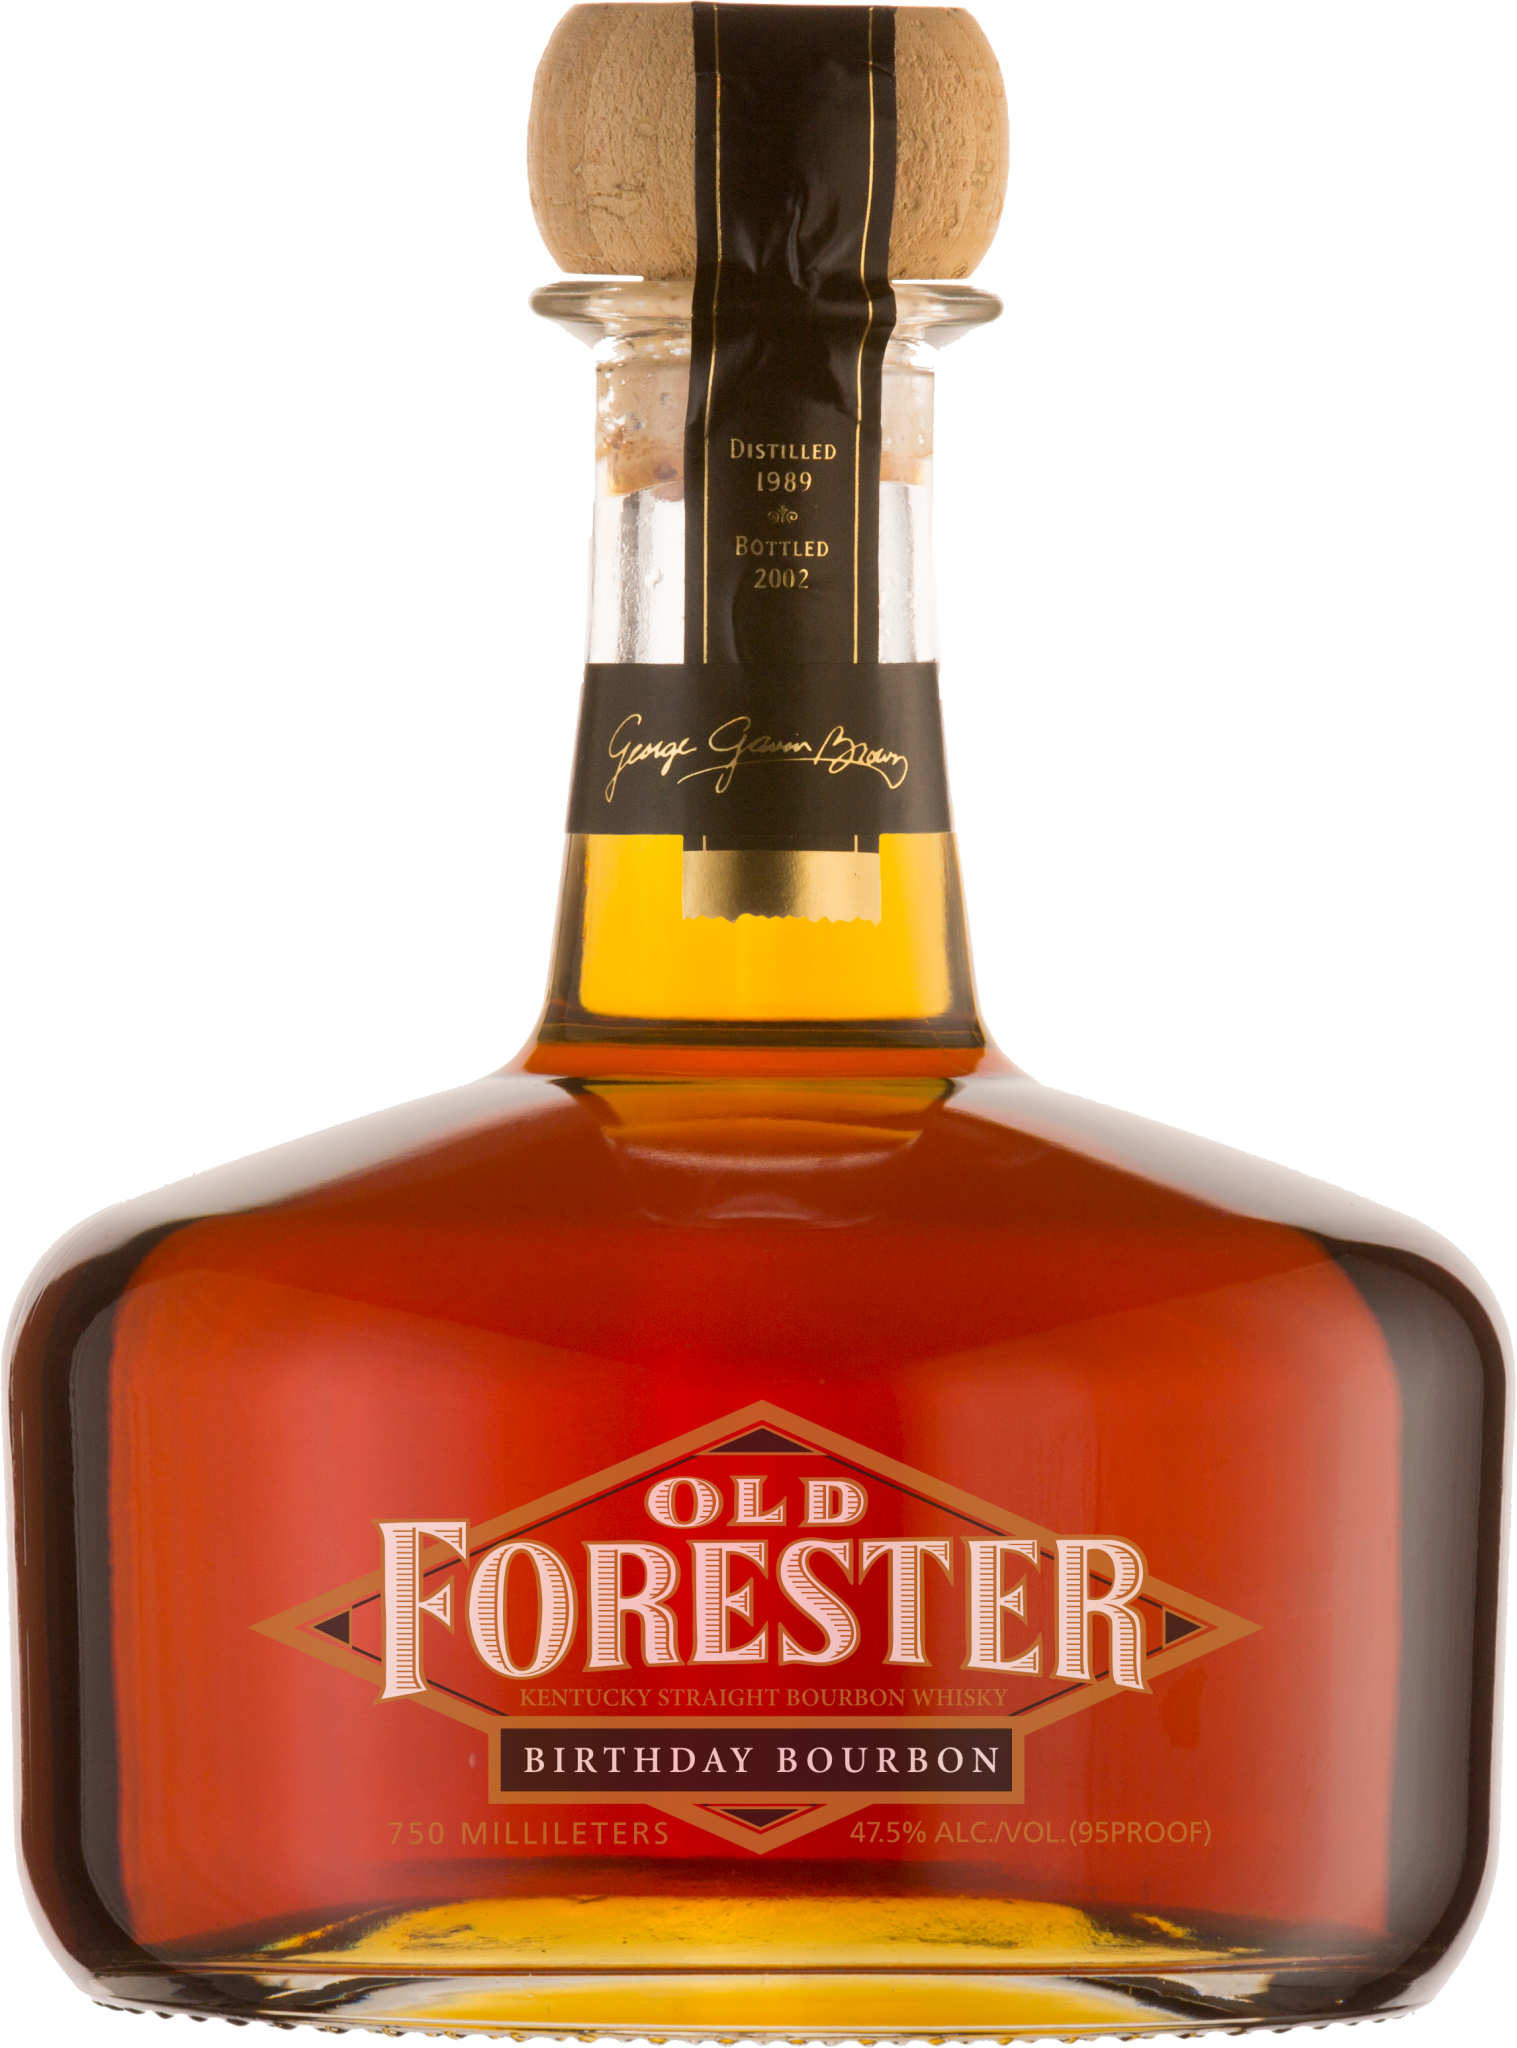 A bottle of Old Forester 2003 Birthday Bourbon on a black background.